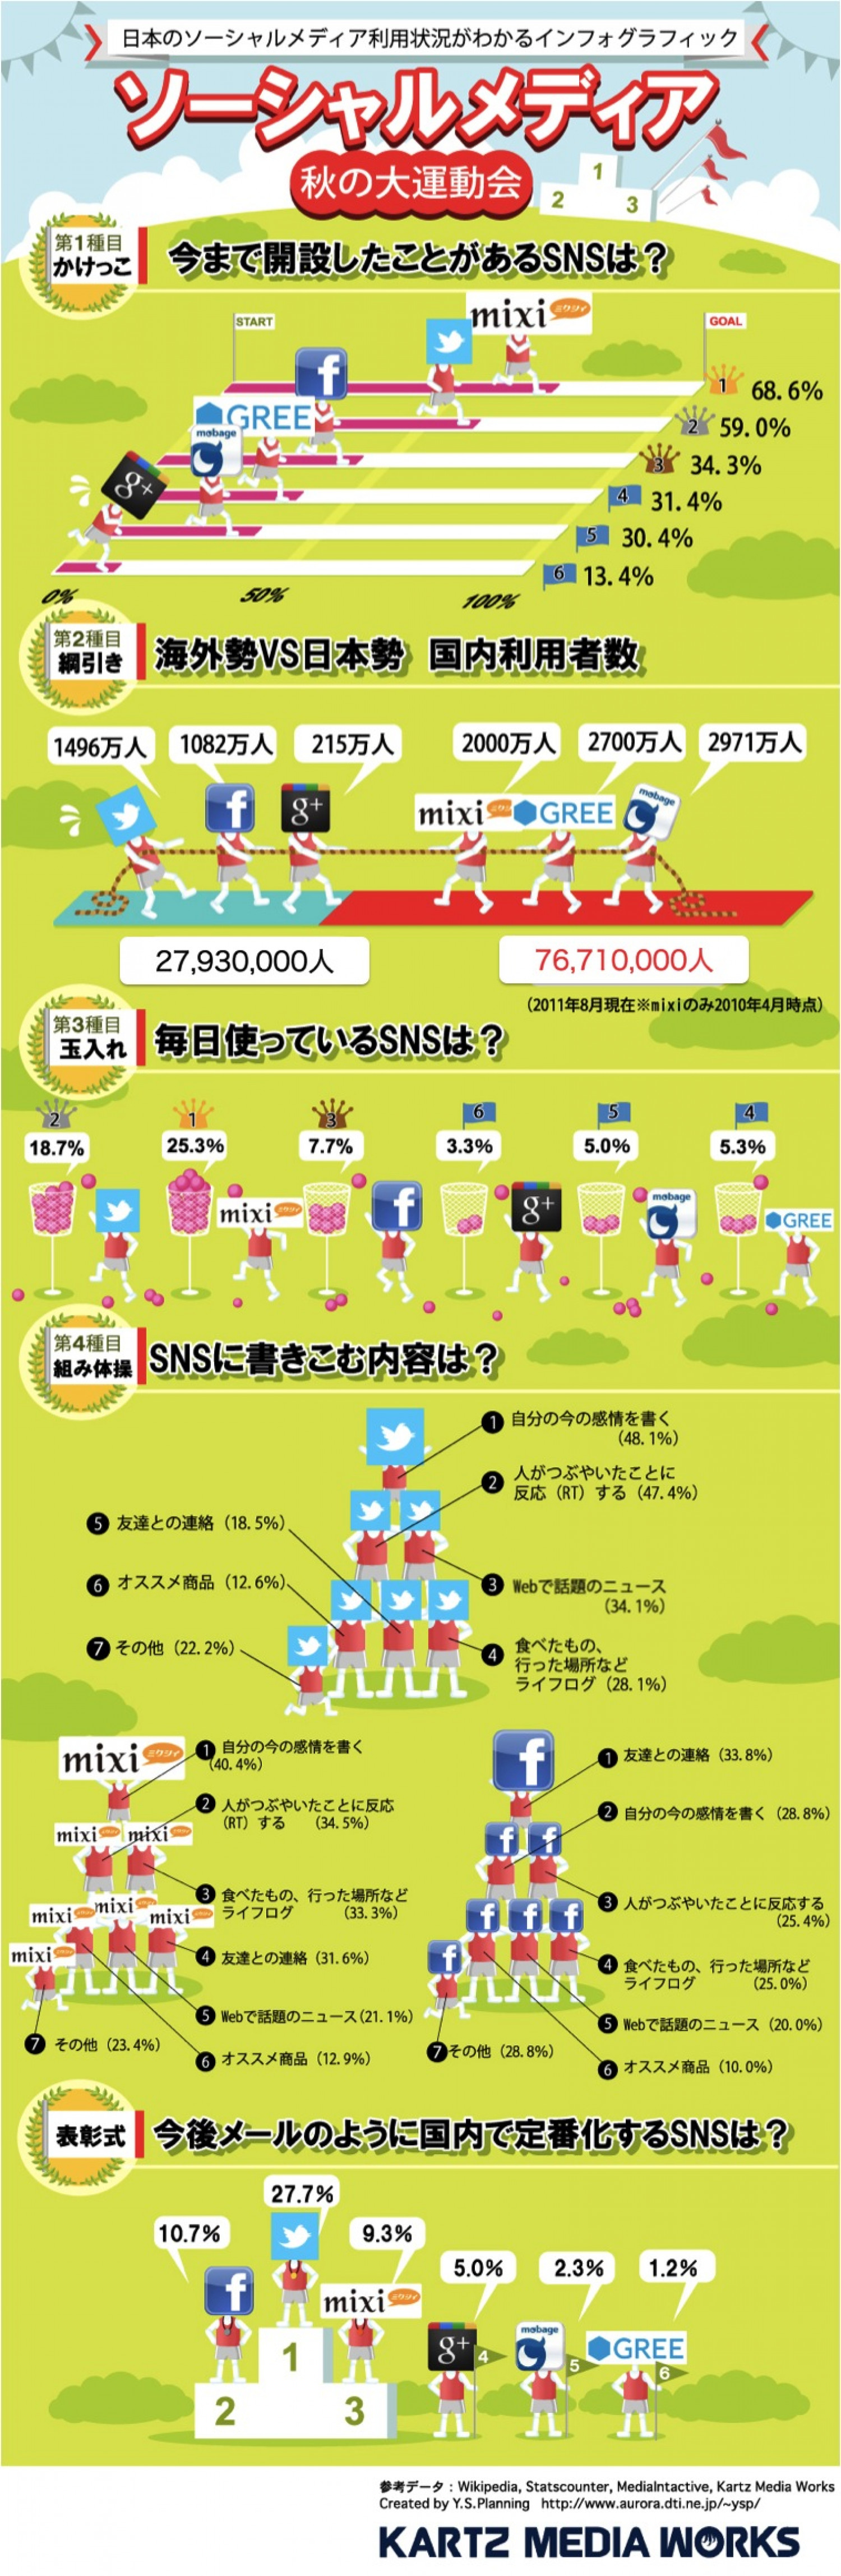 SocialMedia Wars in japan Infographic